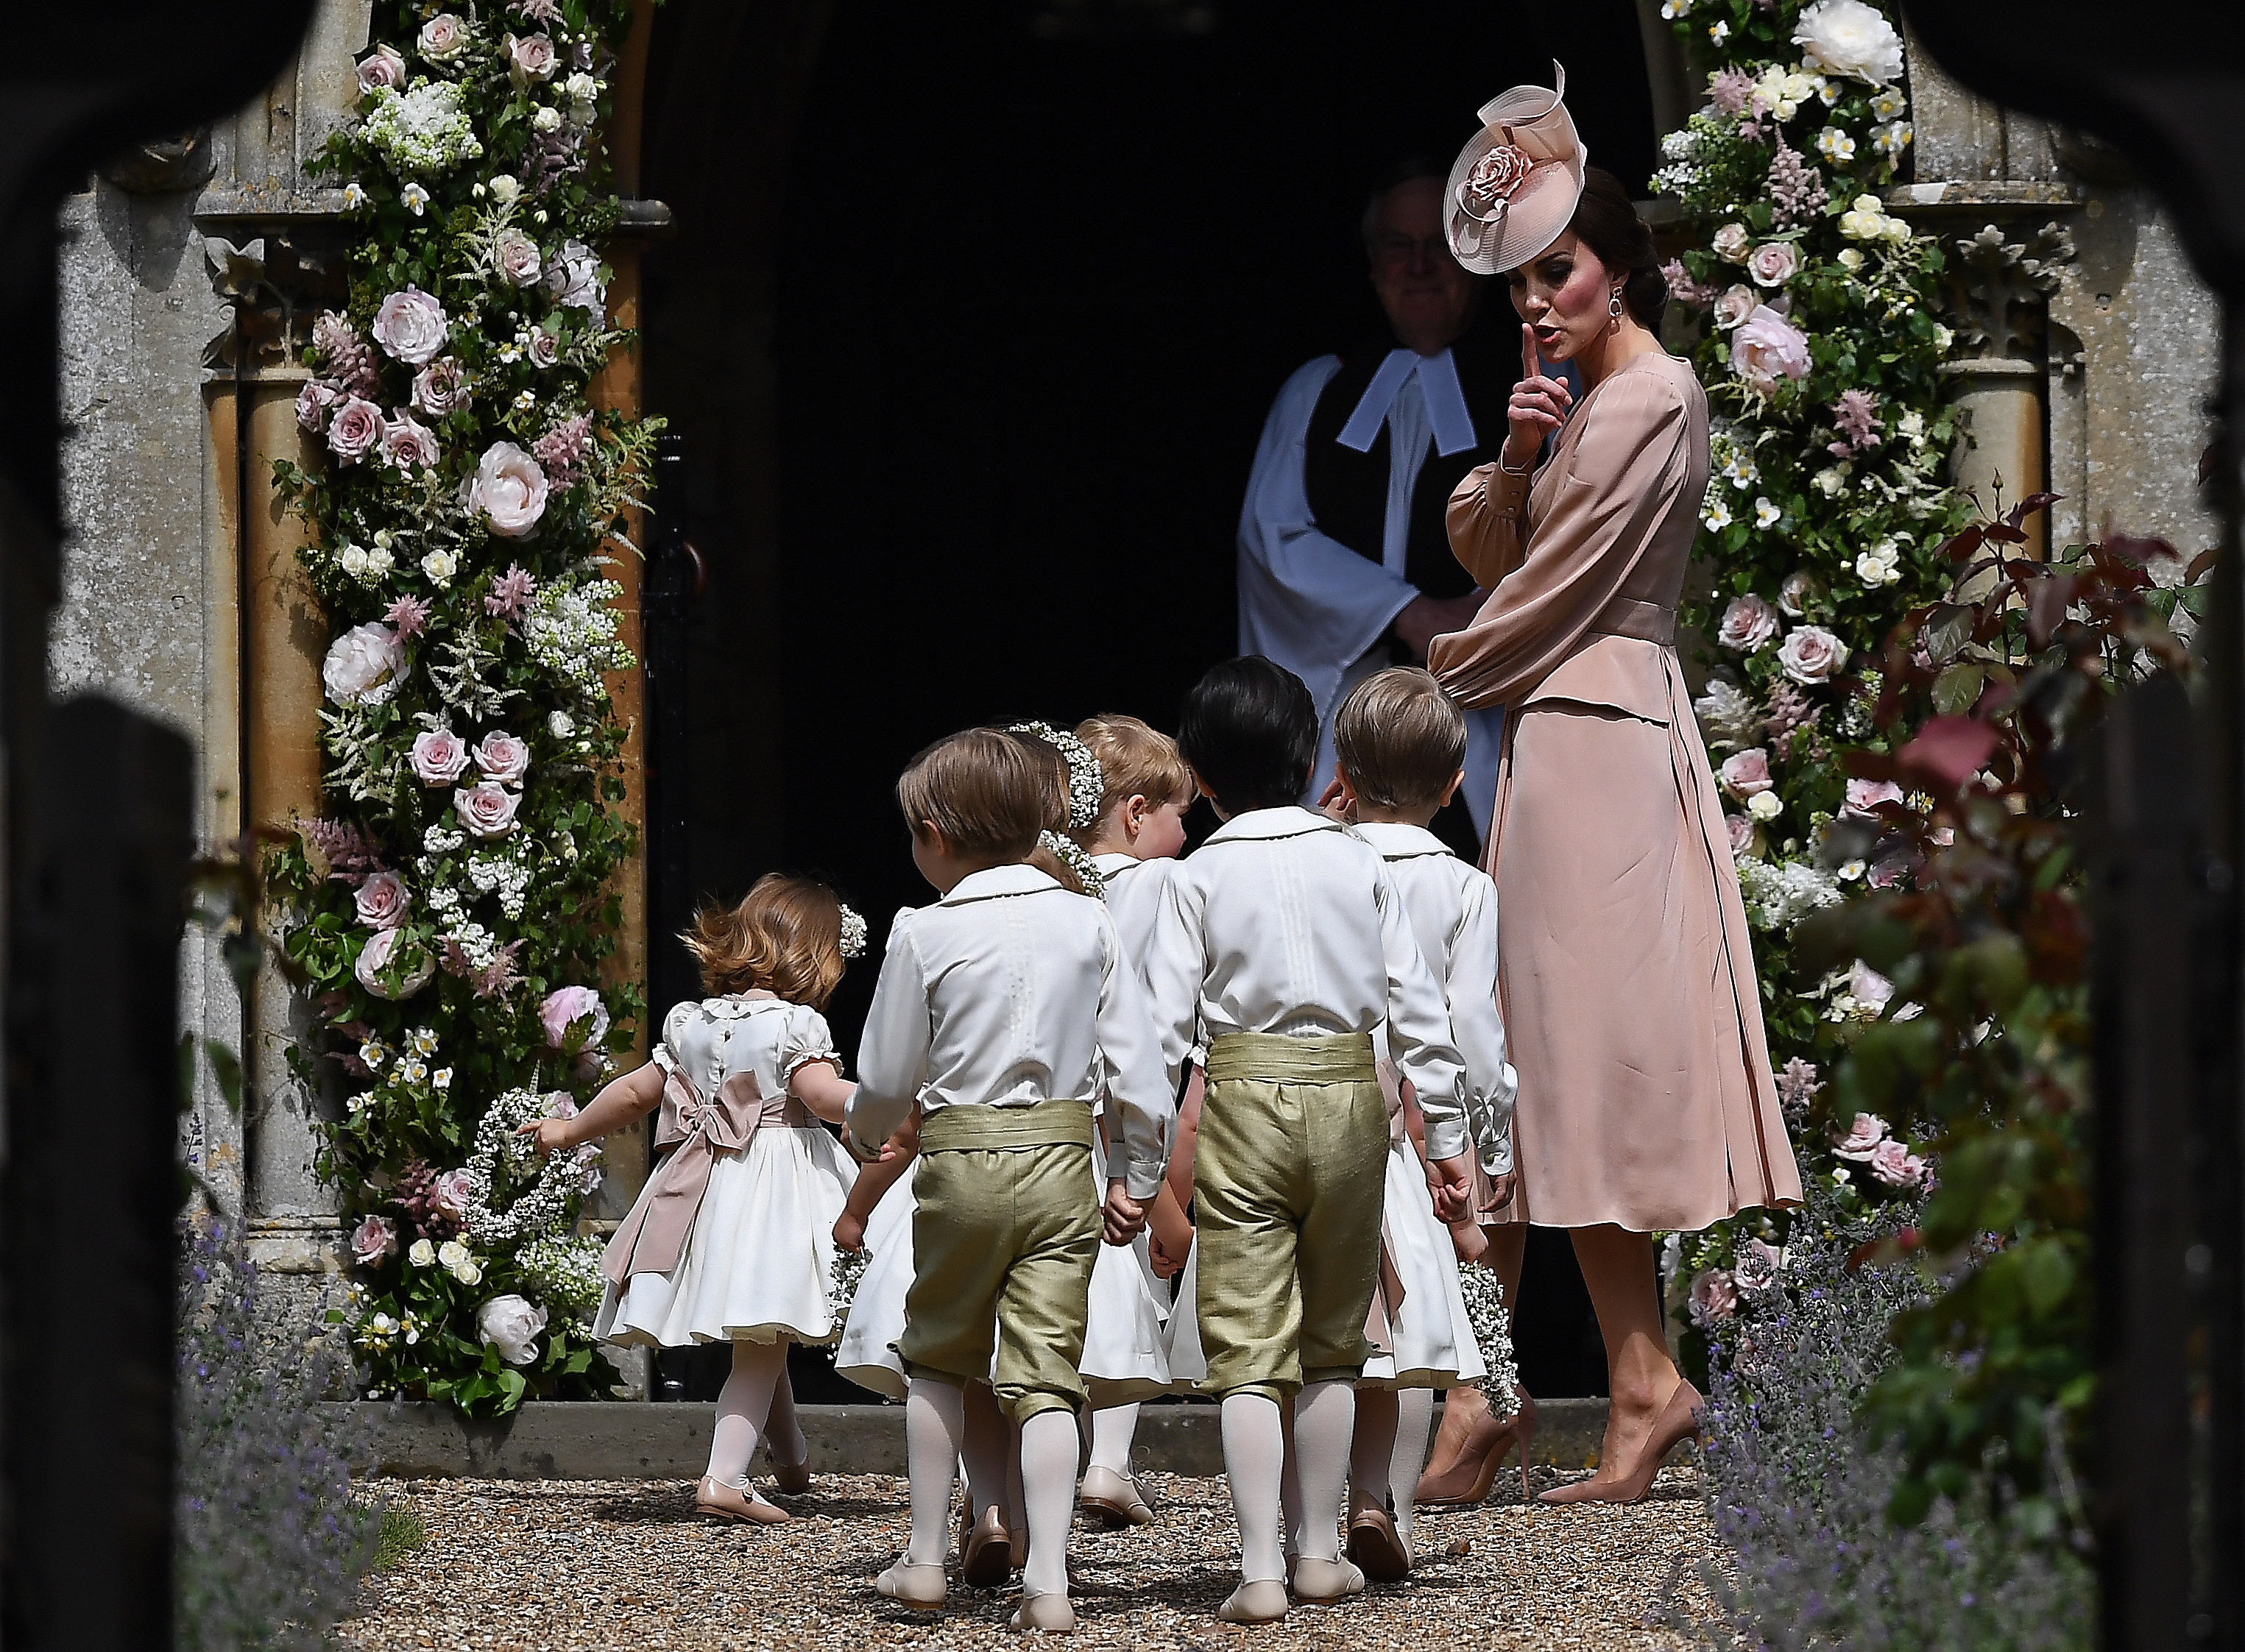 Britain's Catherine, Duchess of Cambridge walks with the bridesmaids and pageboys as they arrive as they arrive for her sister Pippa Middleton's wedding to James Matthews at St Mark's Church on May 20, 2017 in Englefield Green, England.